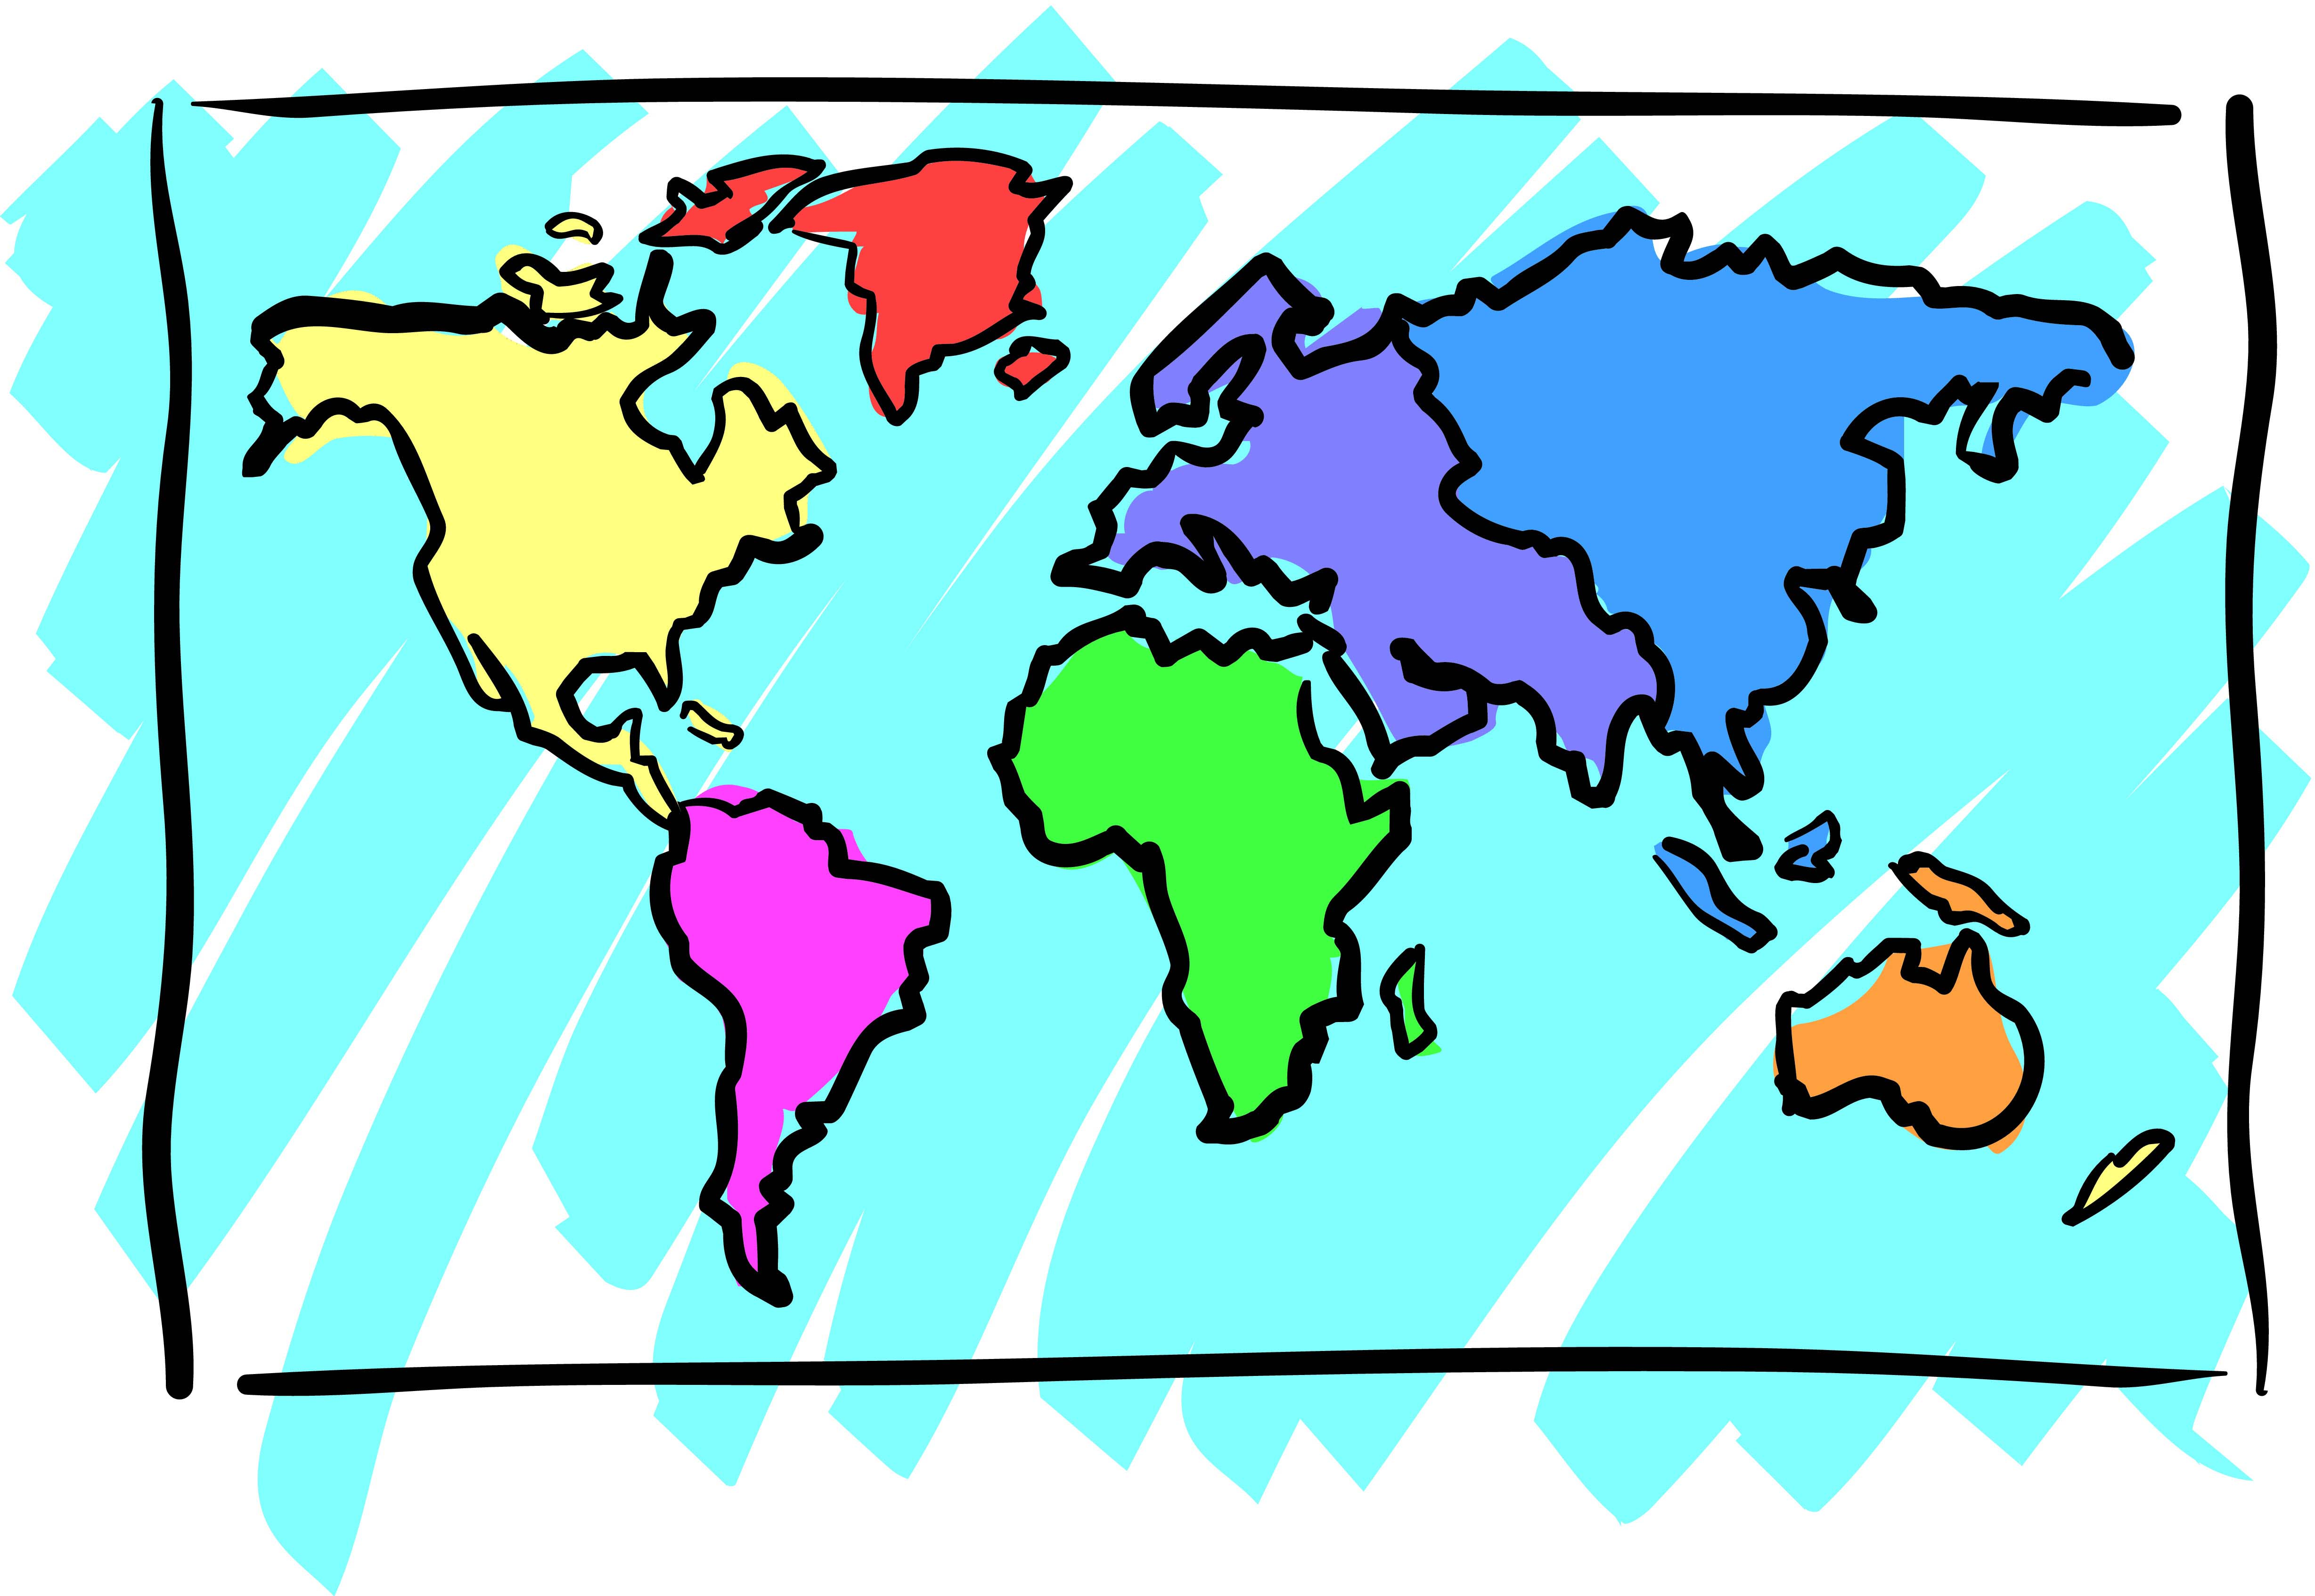 World map clipart free download best world map clipart on 4913x3387 clip art world map with countries clipart kid gumiabroncs Images